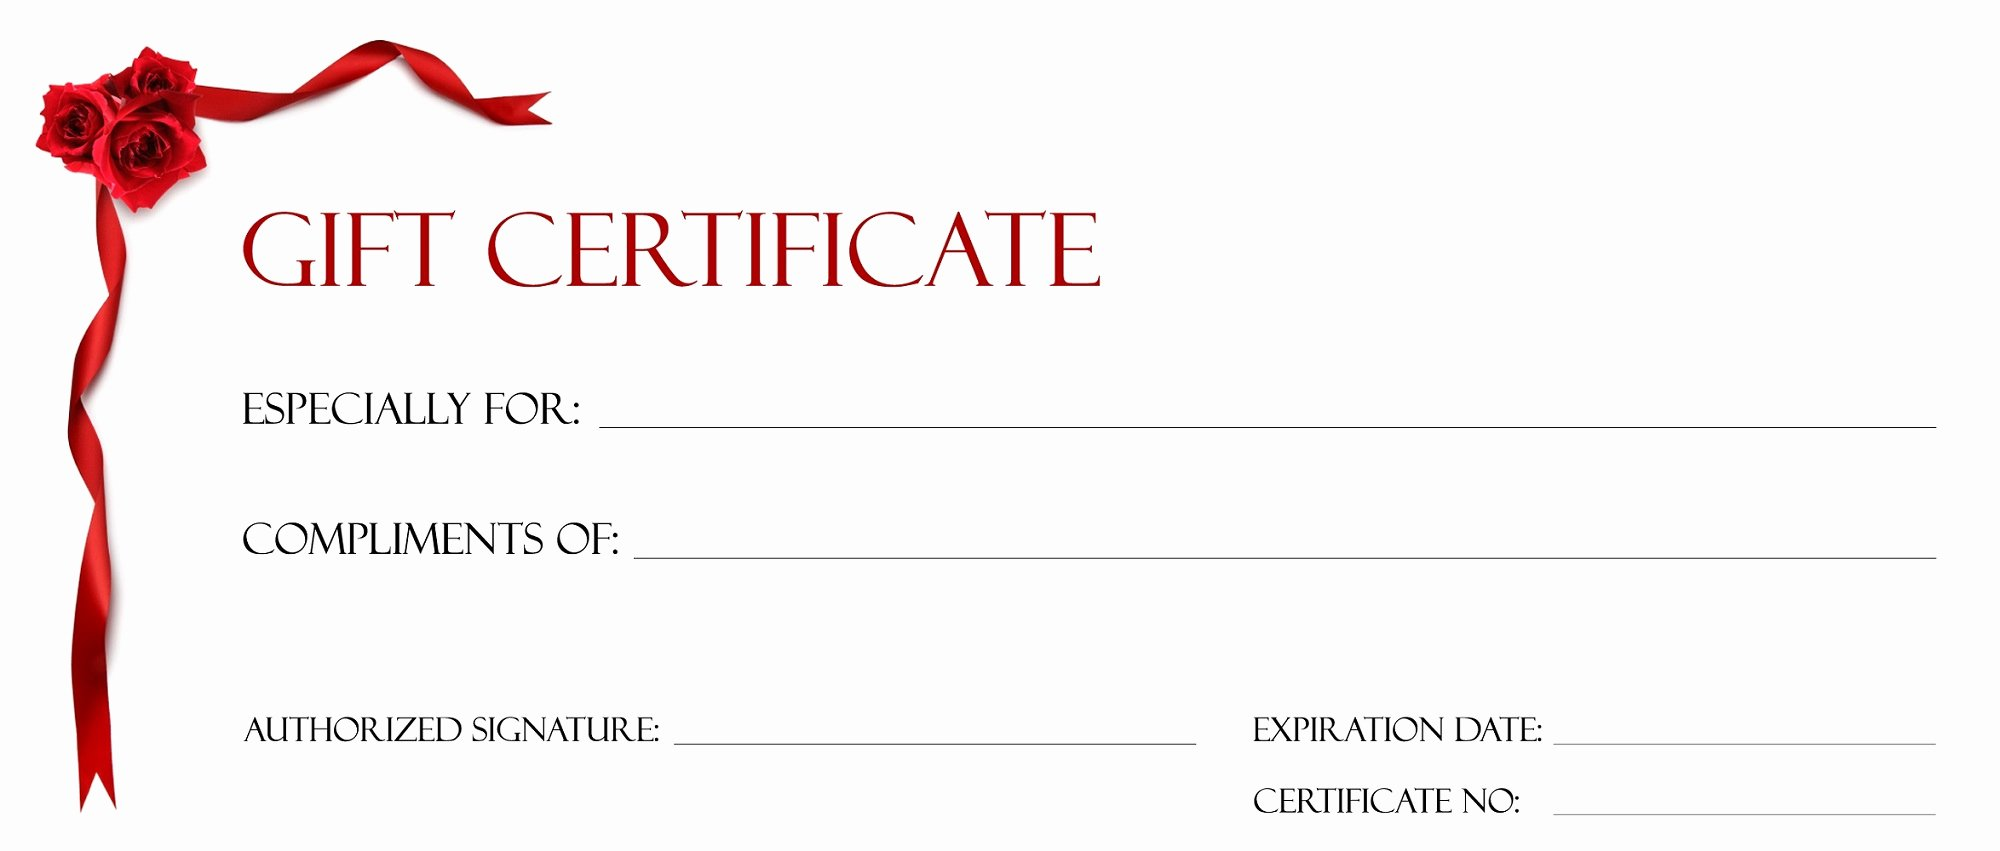 Fancy Gift Certificate Template Best Of Gift Certificate Template for Kids Blanks